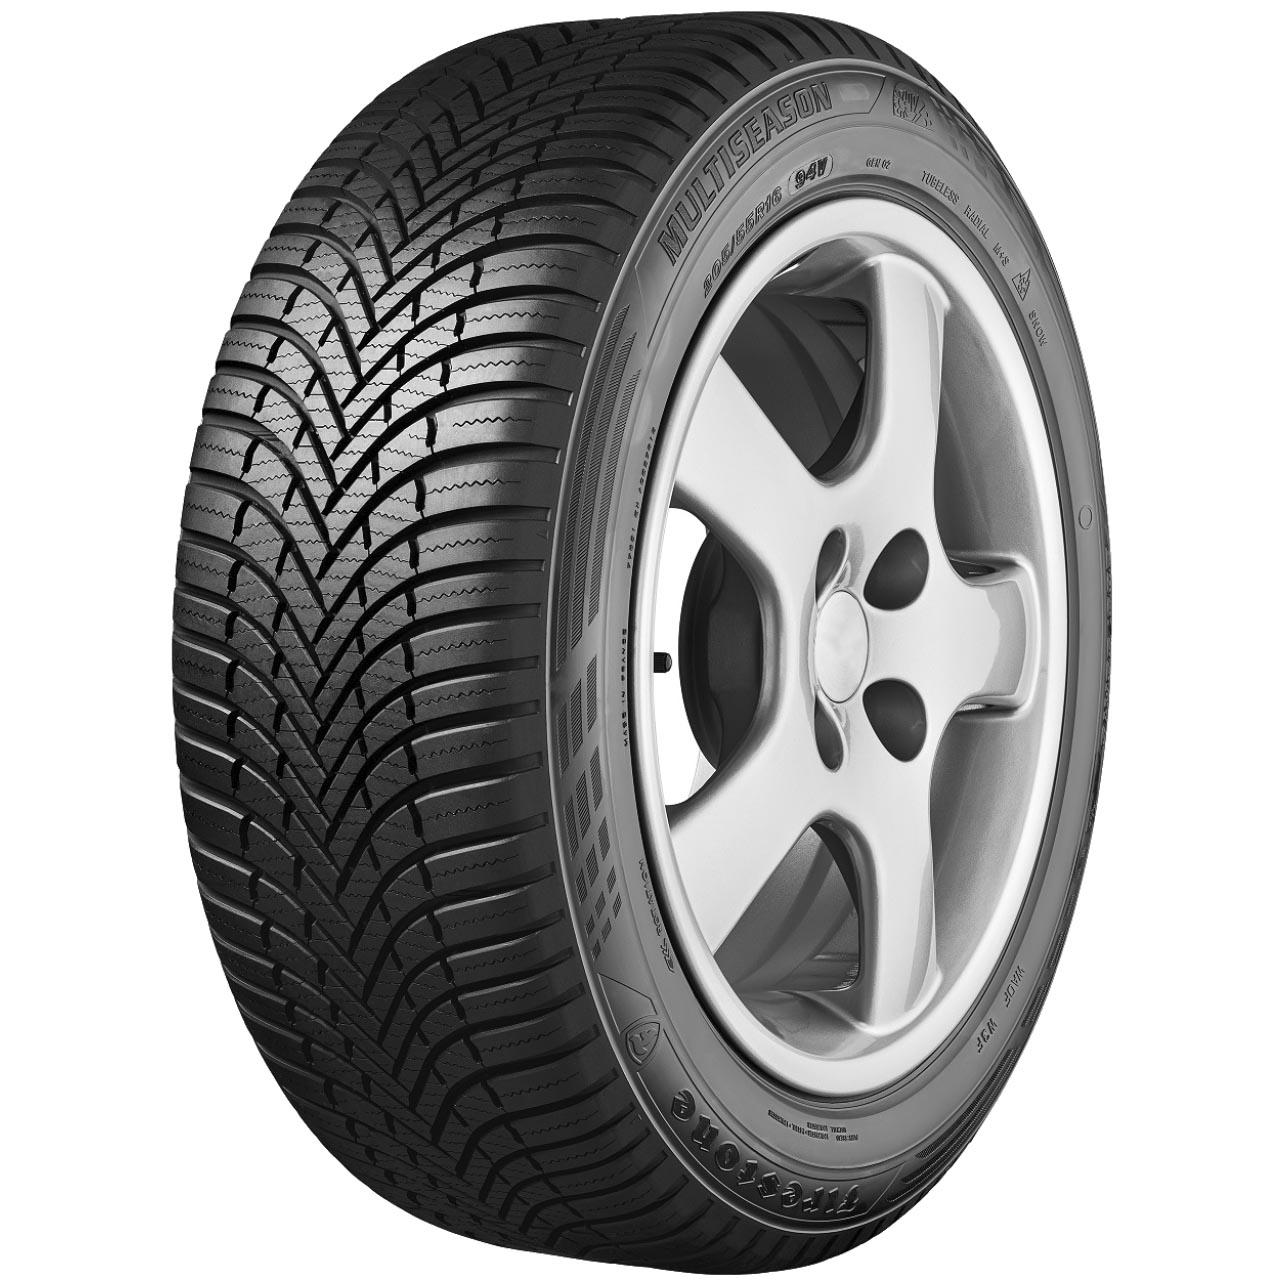 Firestone Multiseason 2 225/40R18 92Y XL